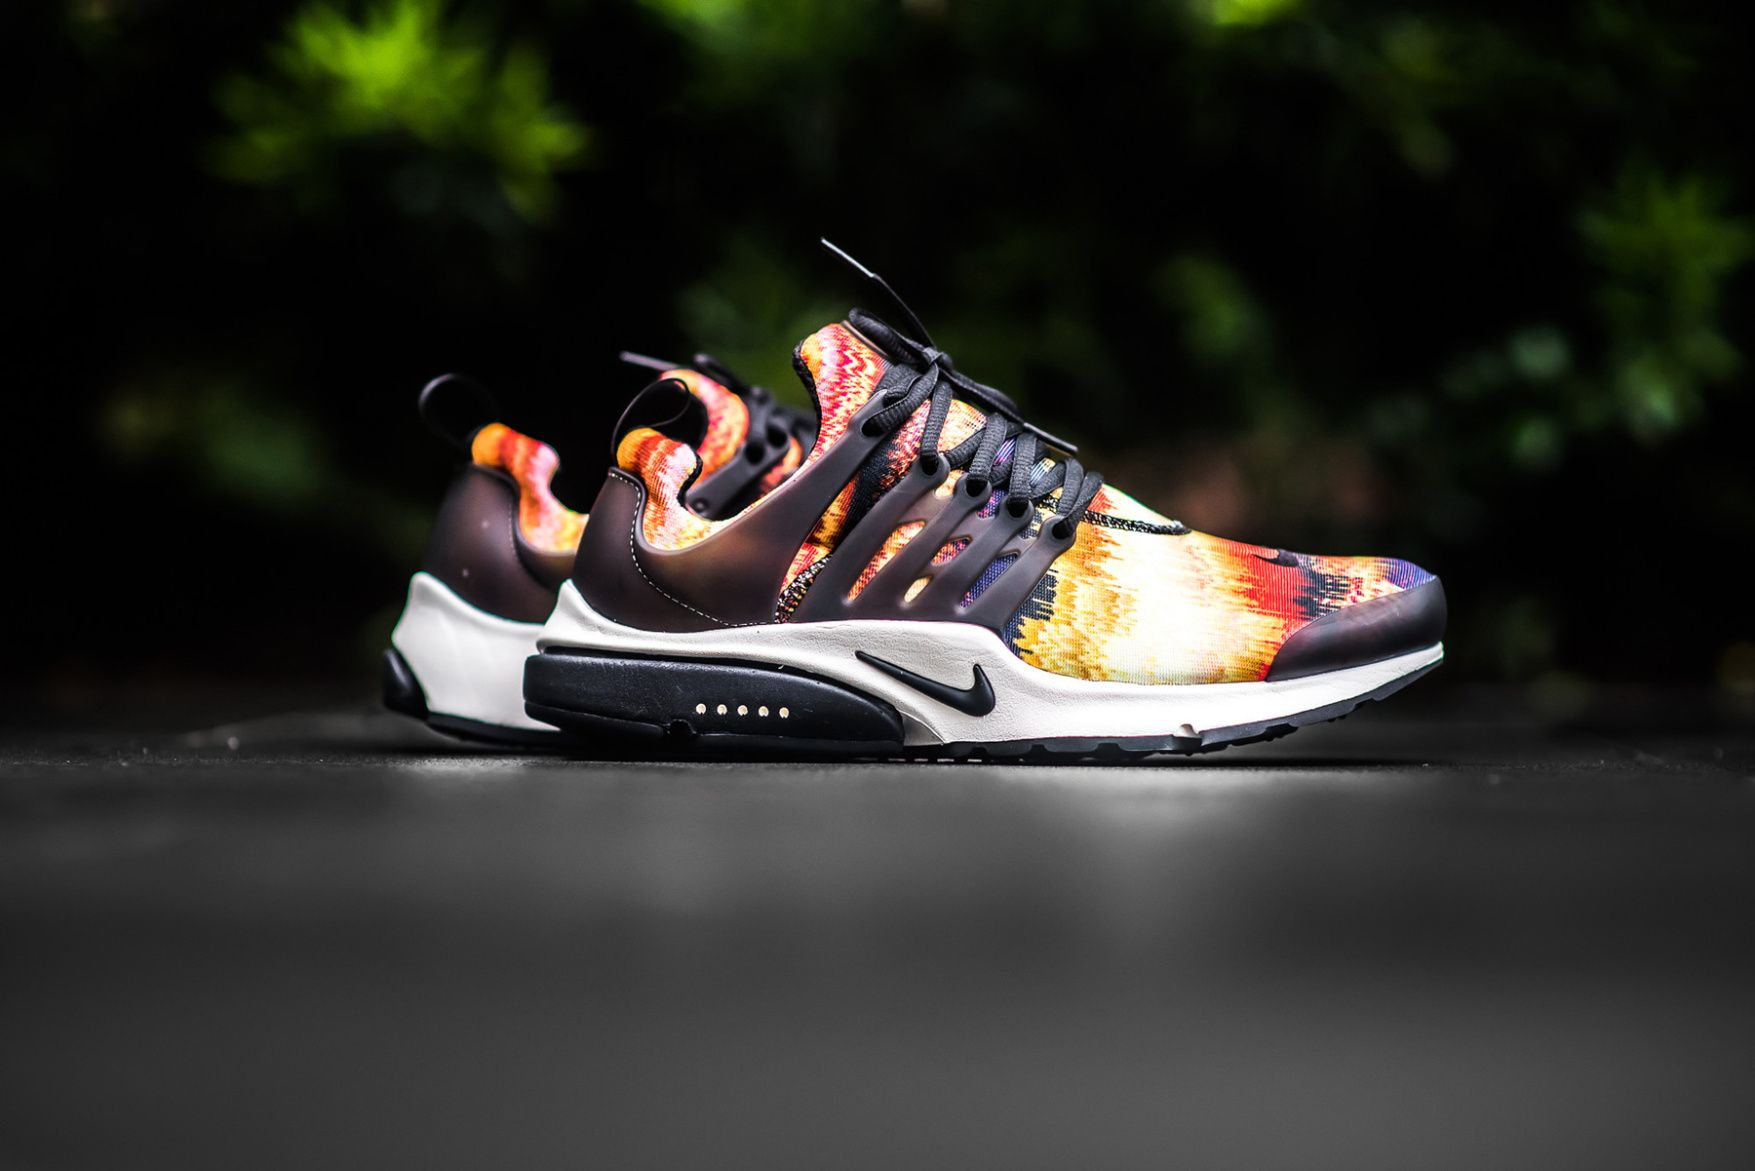 The Nike Air Presto GPX Gets a Triple Vibrant Revamp